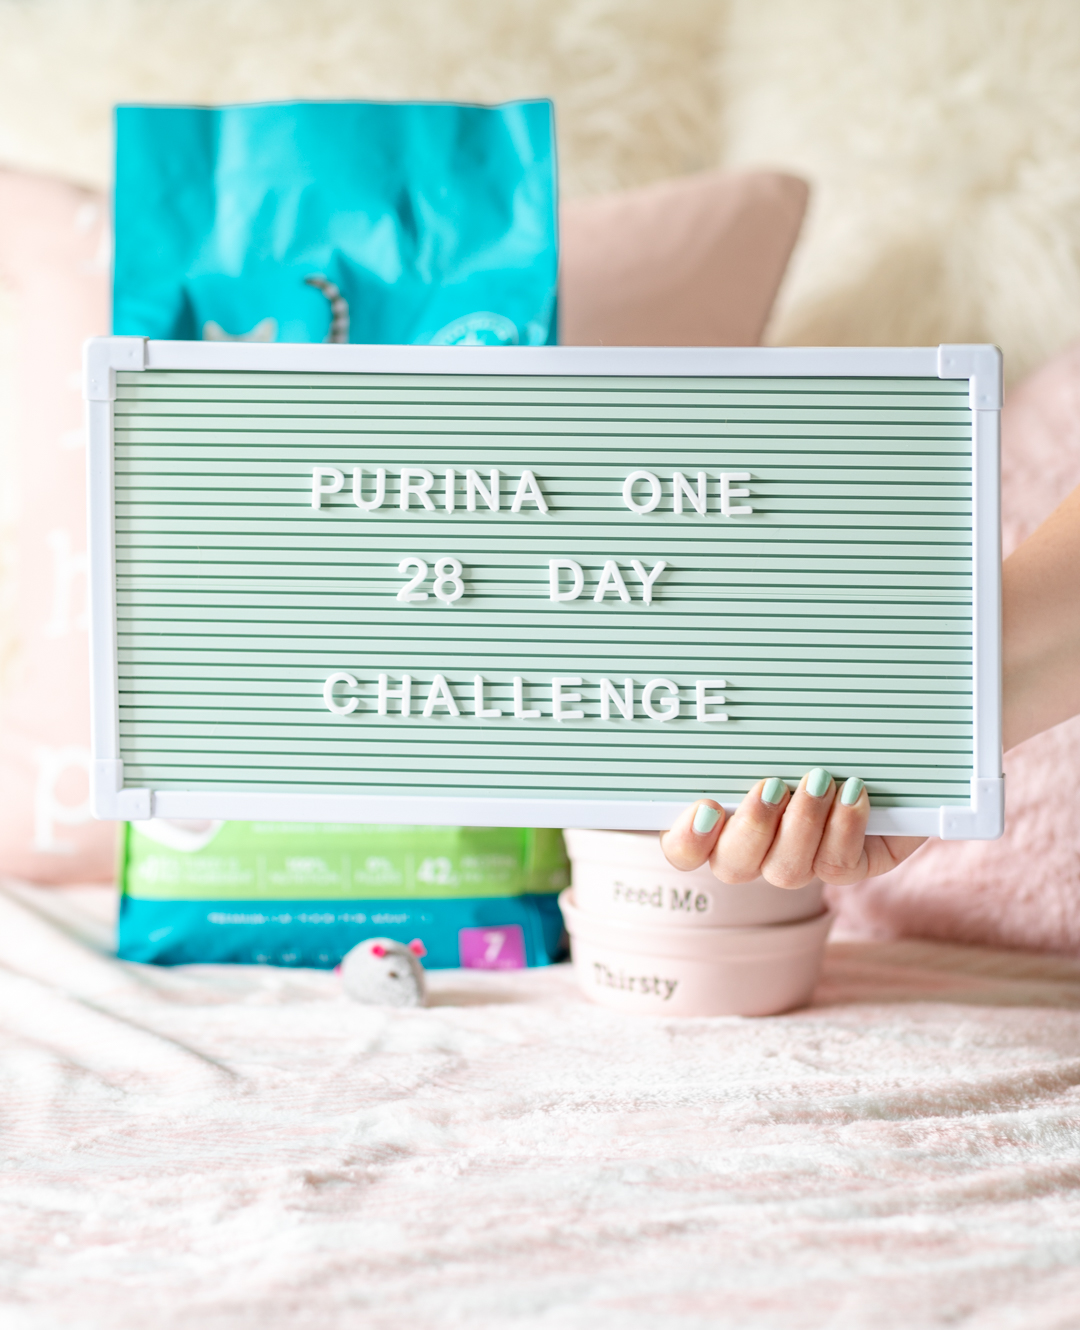 Purina One 28 Day Challenge